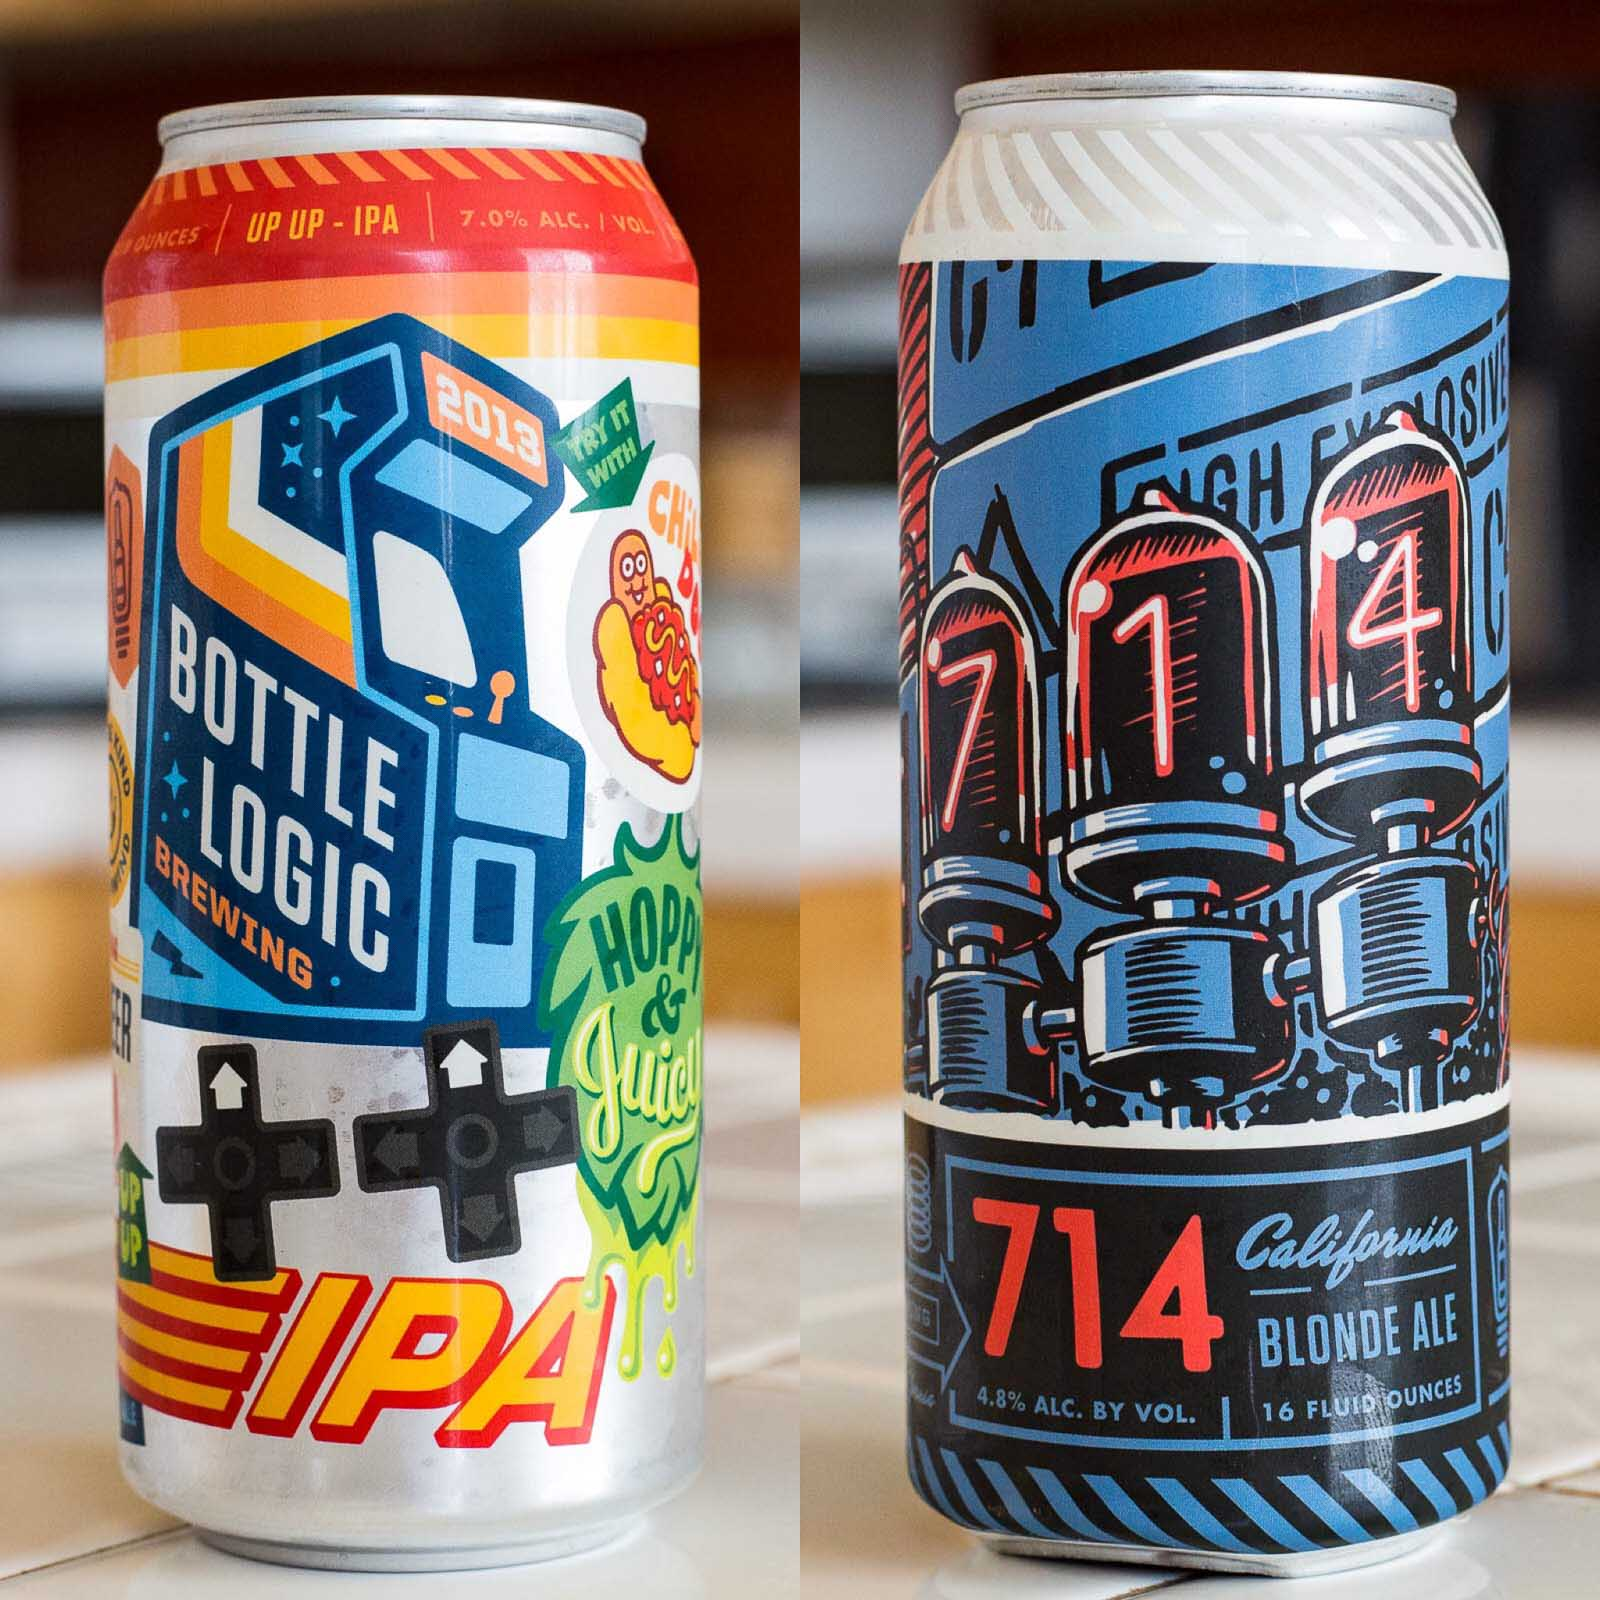 Bottle Logic Brewing 714 and Up Up